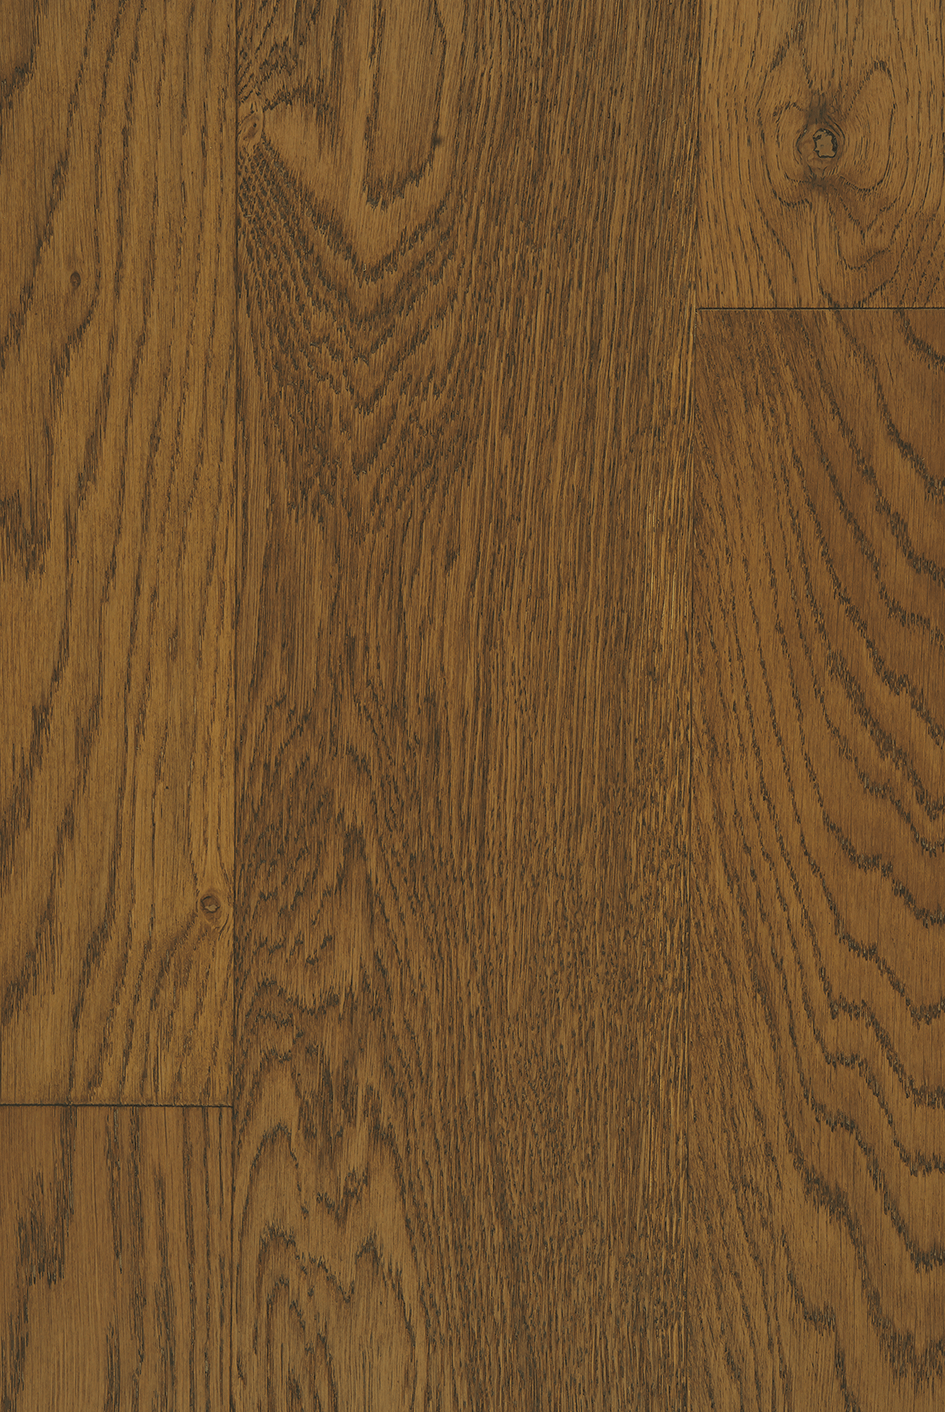 Tuscan Forte Barley Oak Brushed & Lacquered TF513 Engineered Wood Flooring